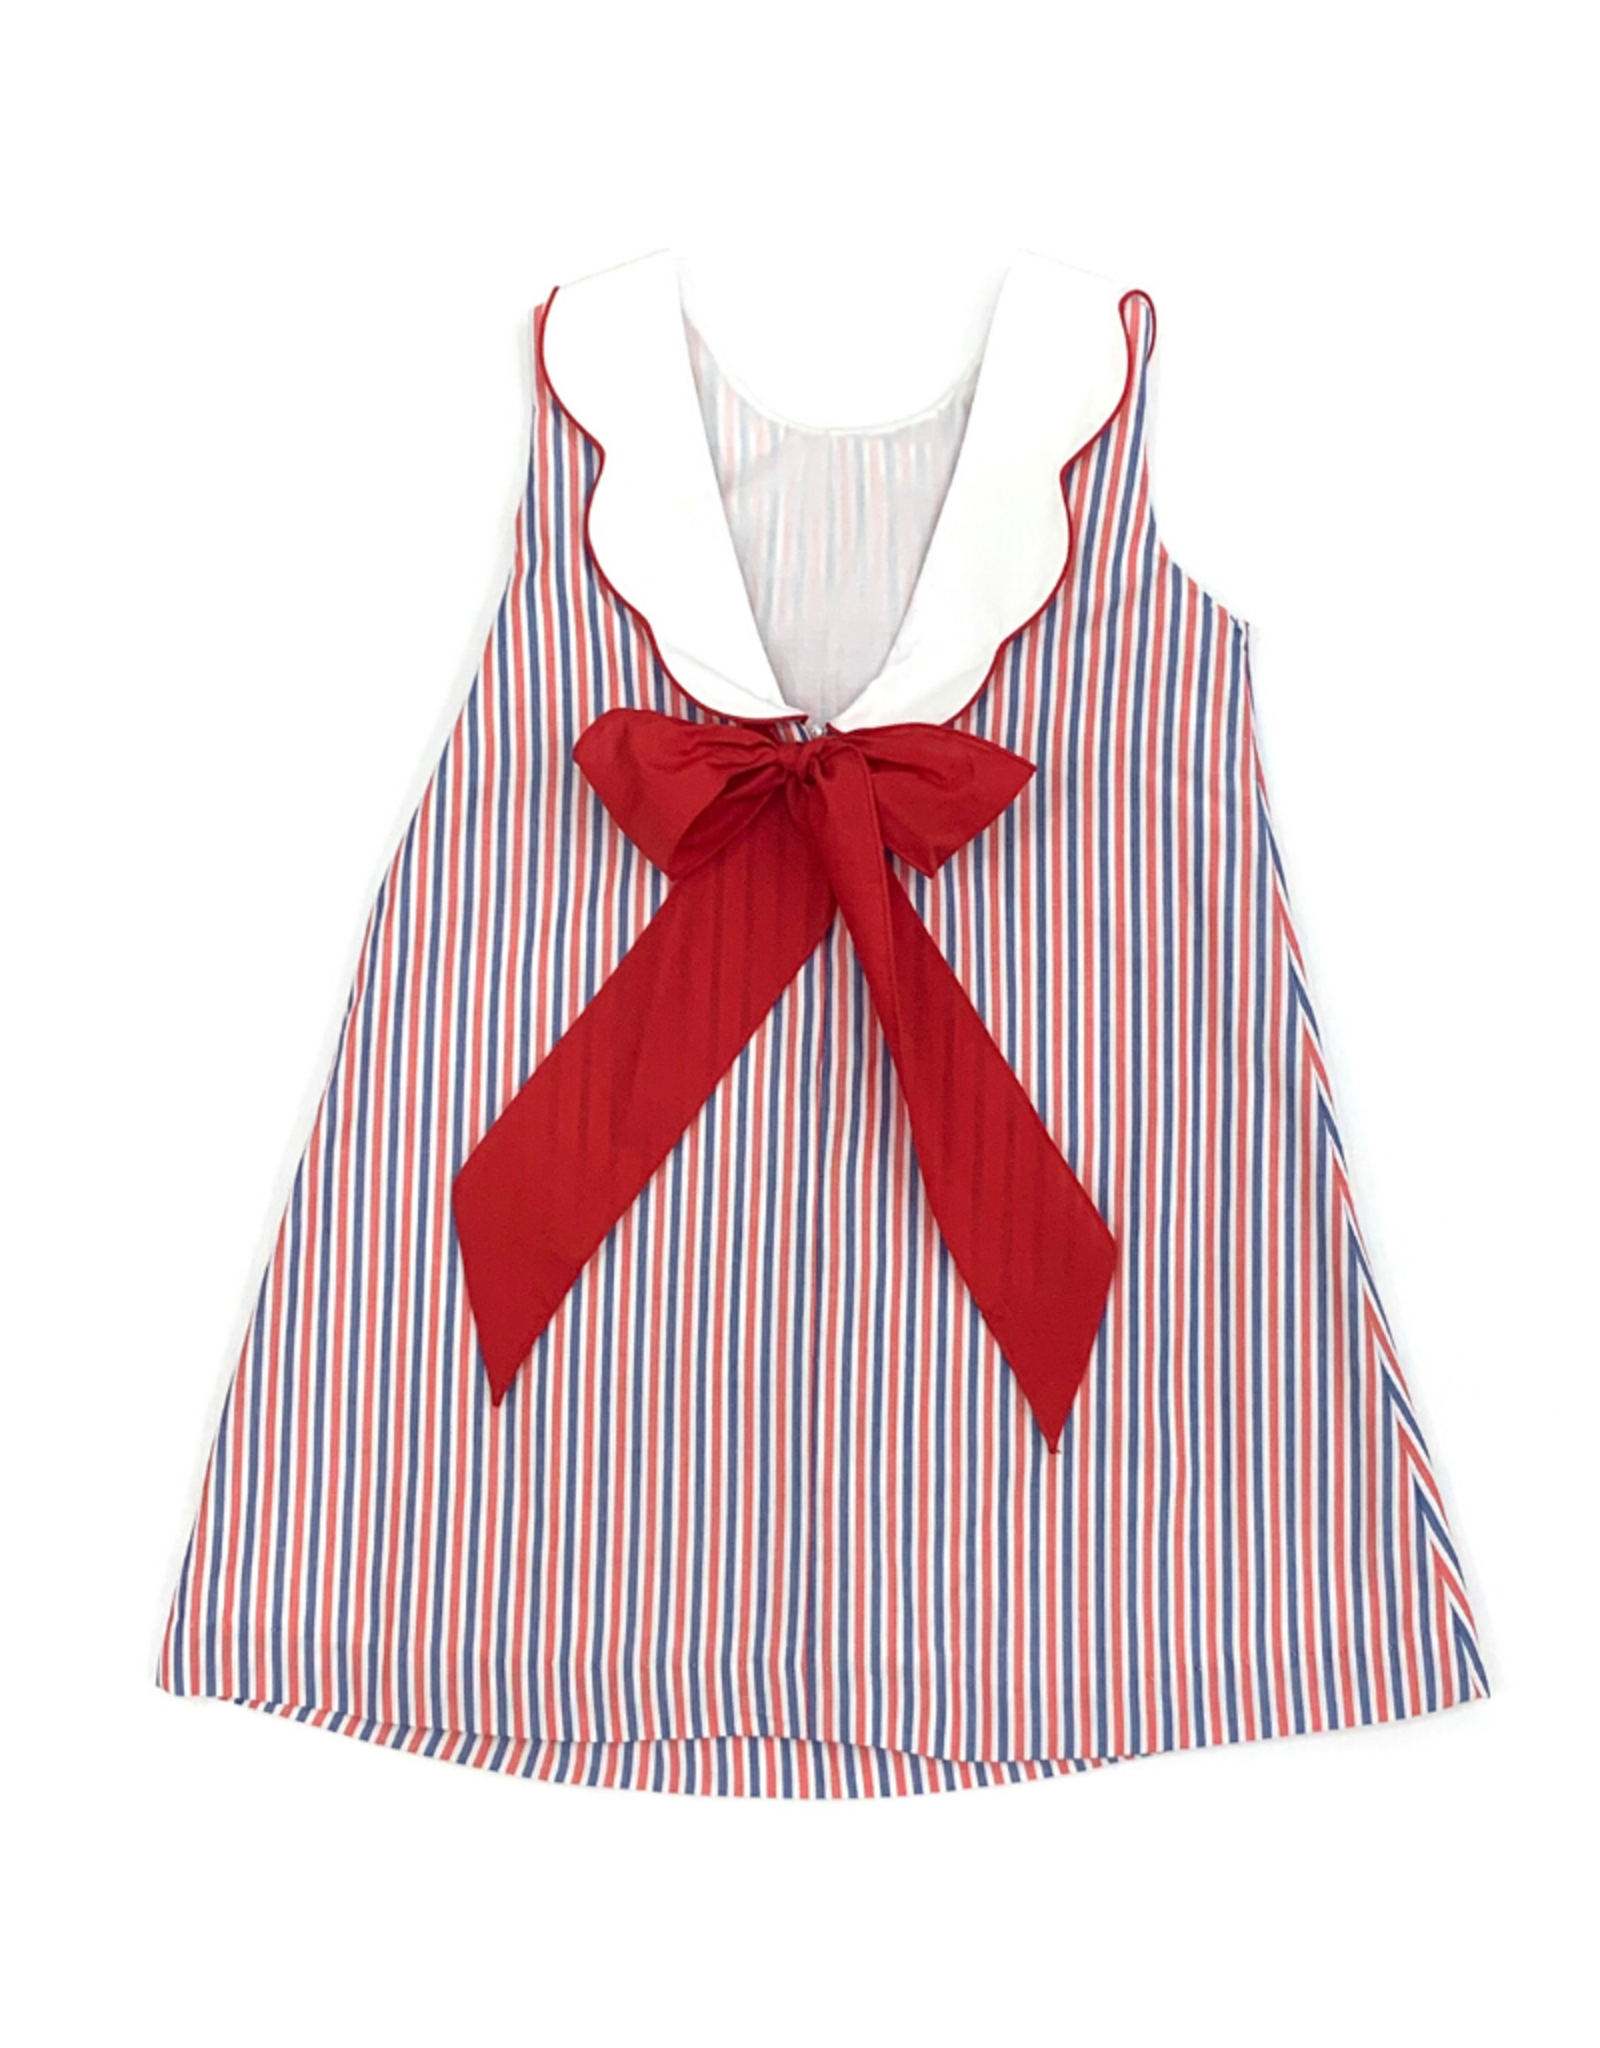 Claire and Charlie Red And Blue Striped Dress With White Scalloped Collar